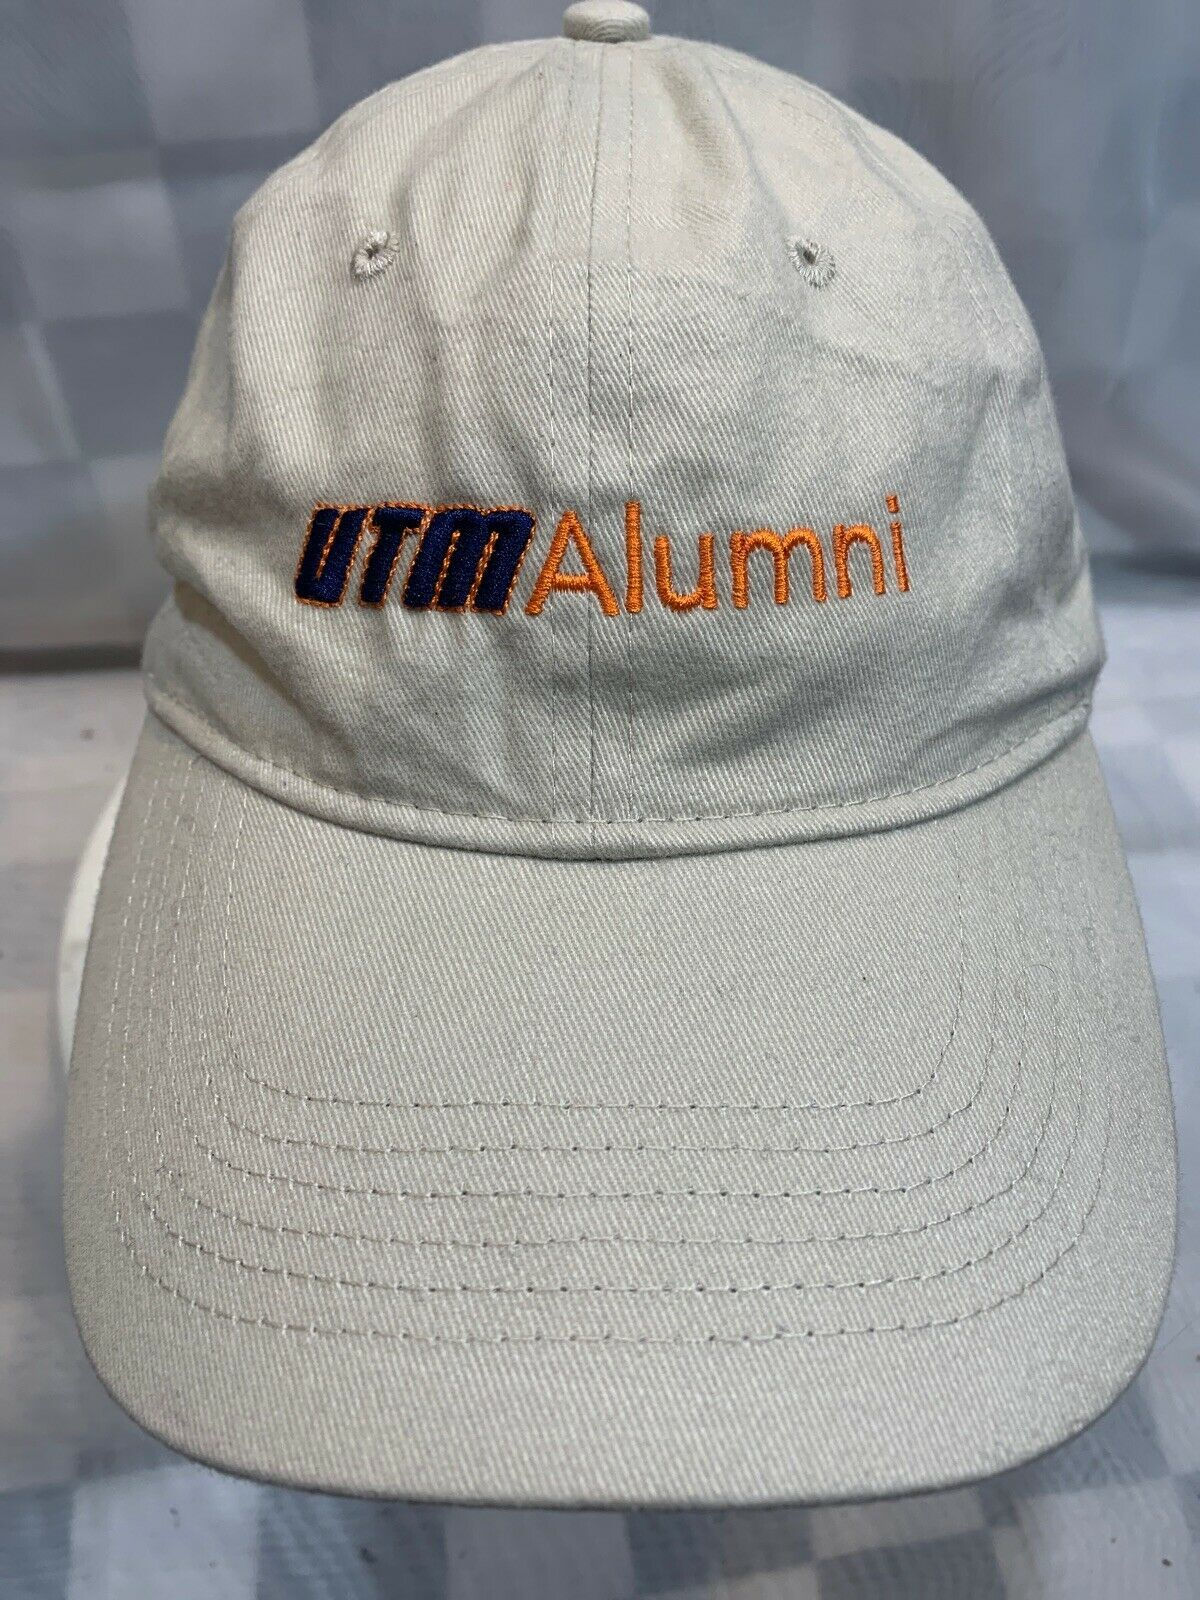 Primary image for UTM Alumni Adjustable Adult Baseball Ball Cap Hat